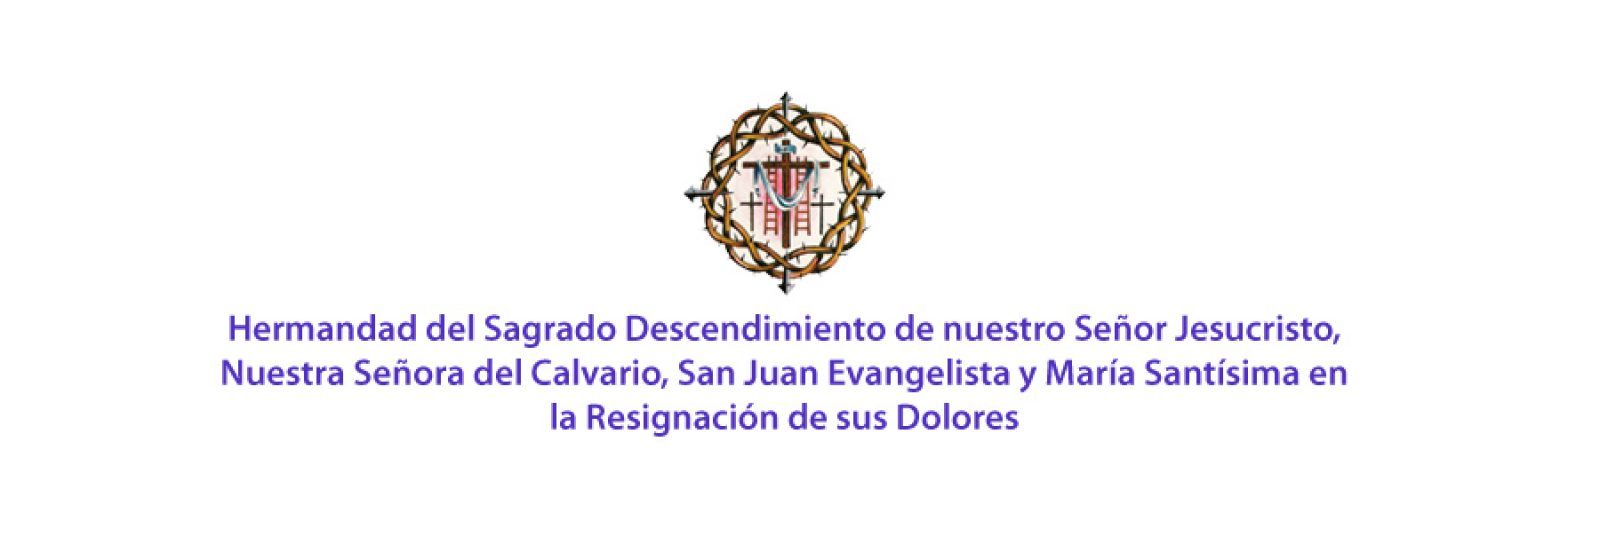 Hermandad del Sagrado Descendimiento